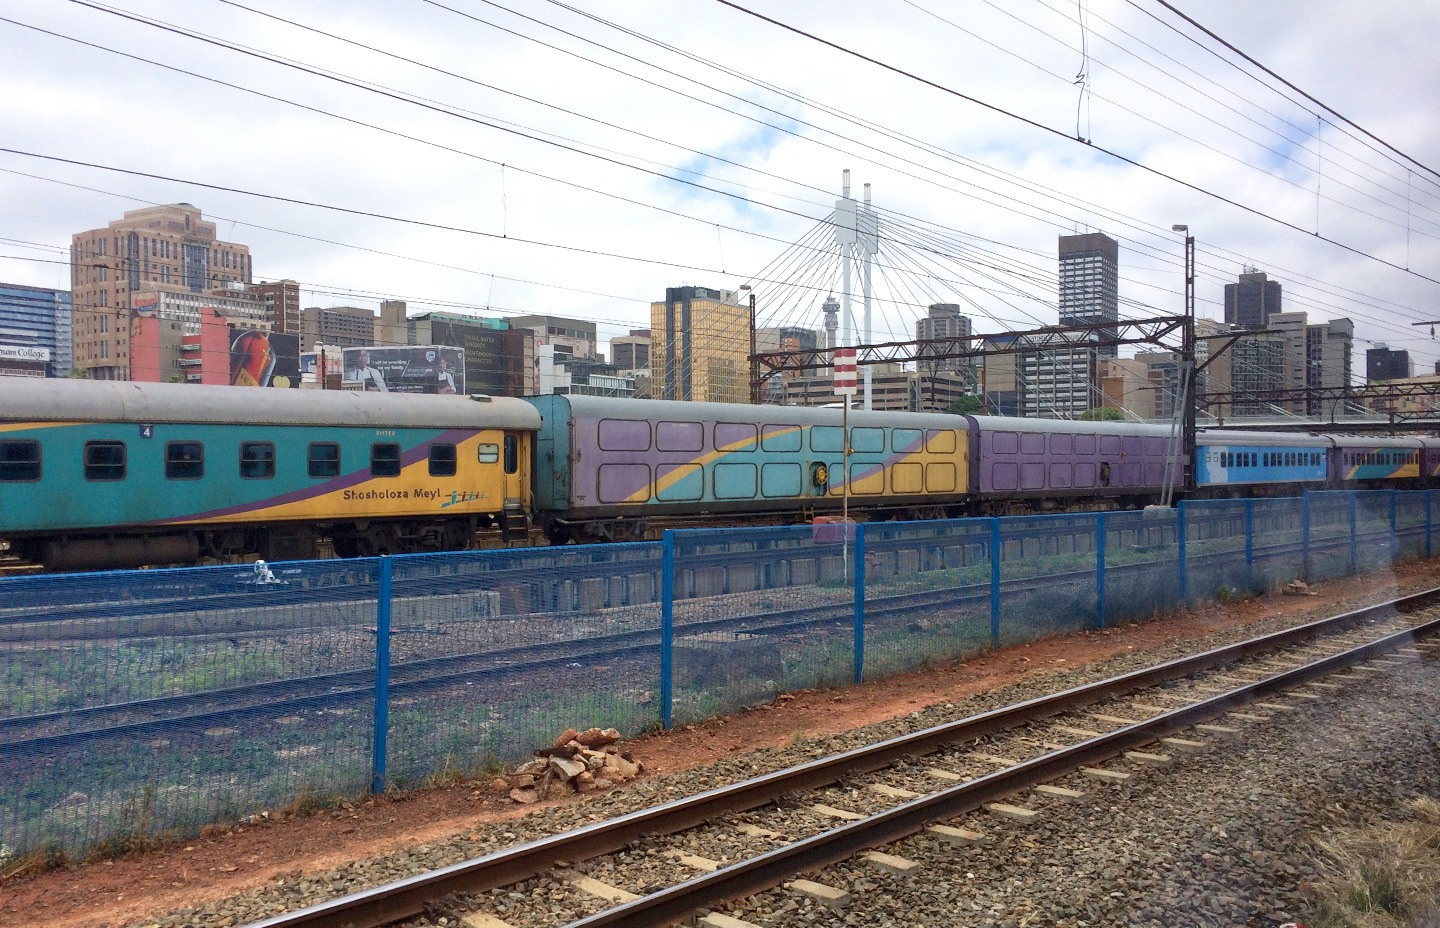 Johannesburg on the Premier Classe train